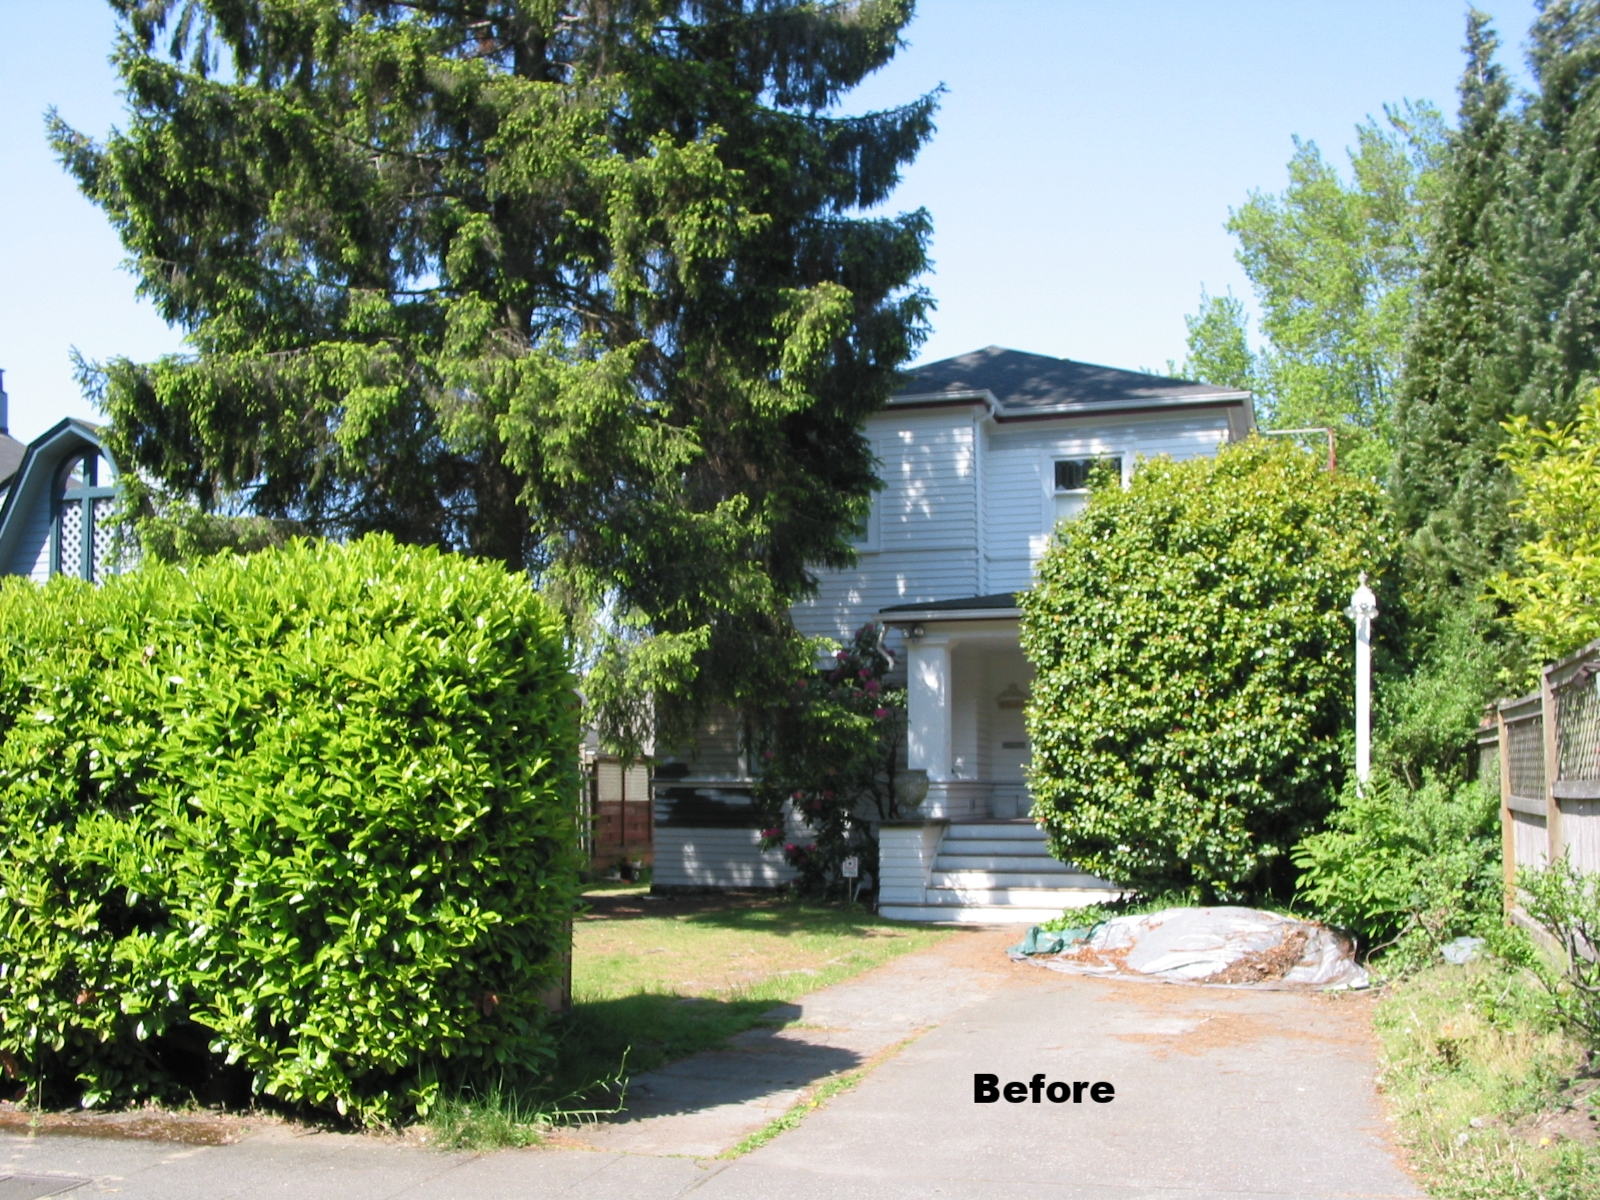 At the beginning of this project, there was patchy lawn and an un-drivable vintage car in the driveway that had been there for years.The yard was just a place to rush past in order to reach the house.